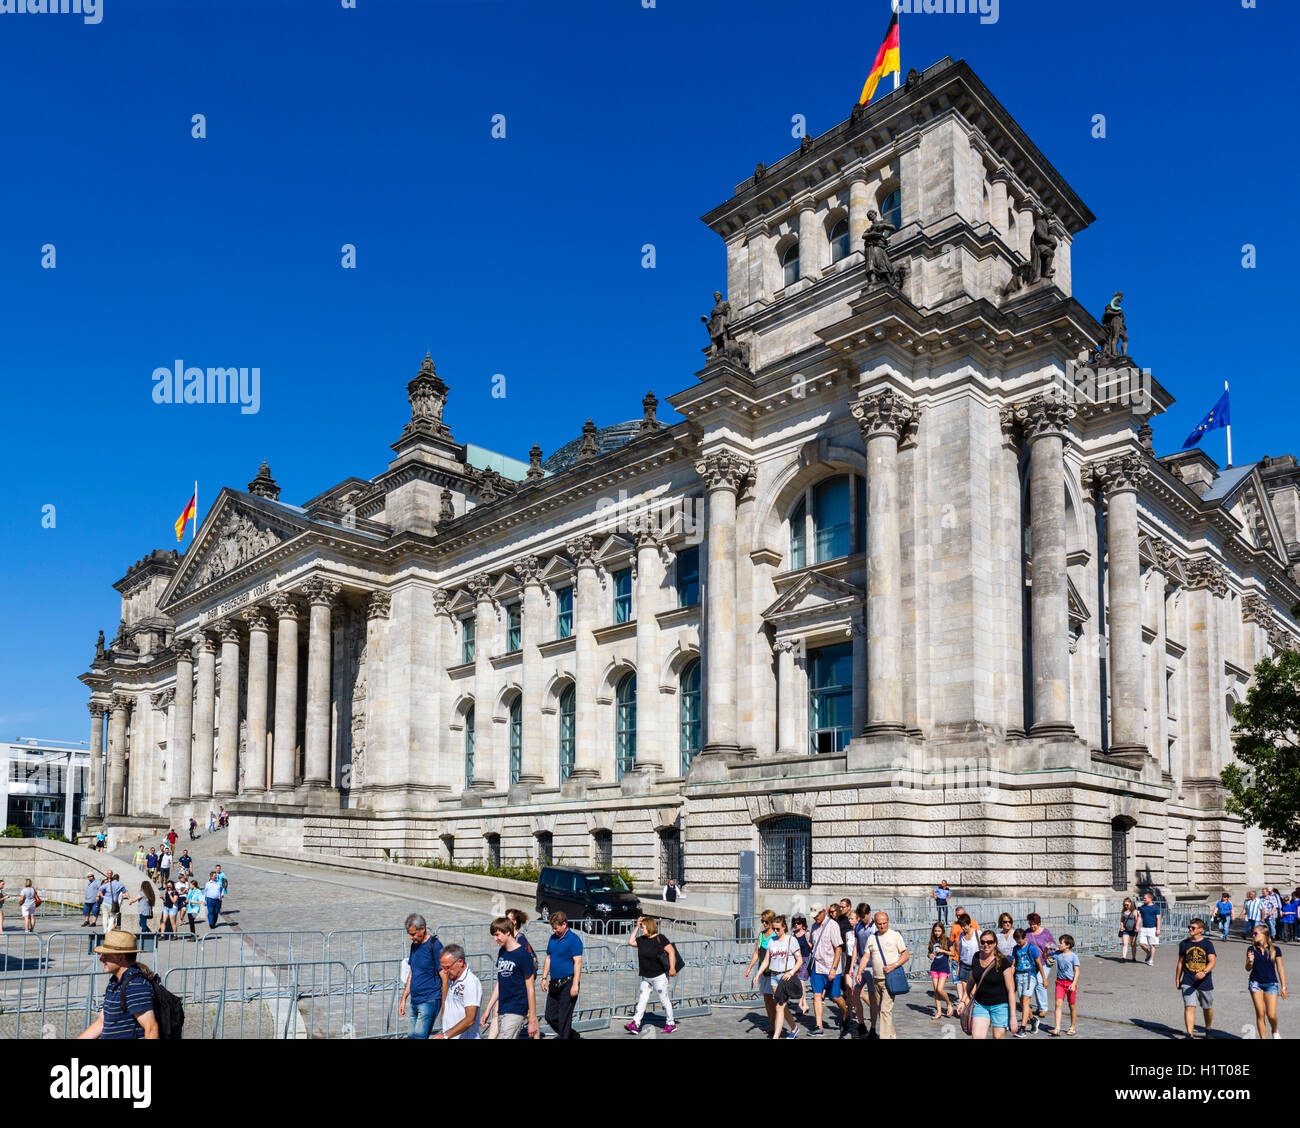 The Reichstag building, Berlin, Germany - Stock Image